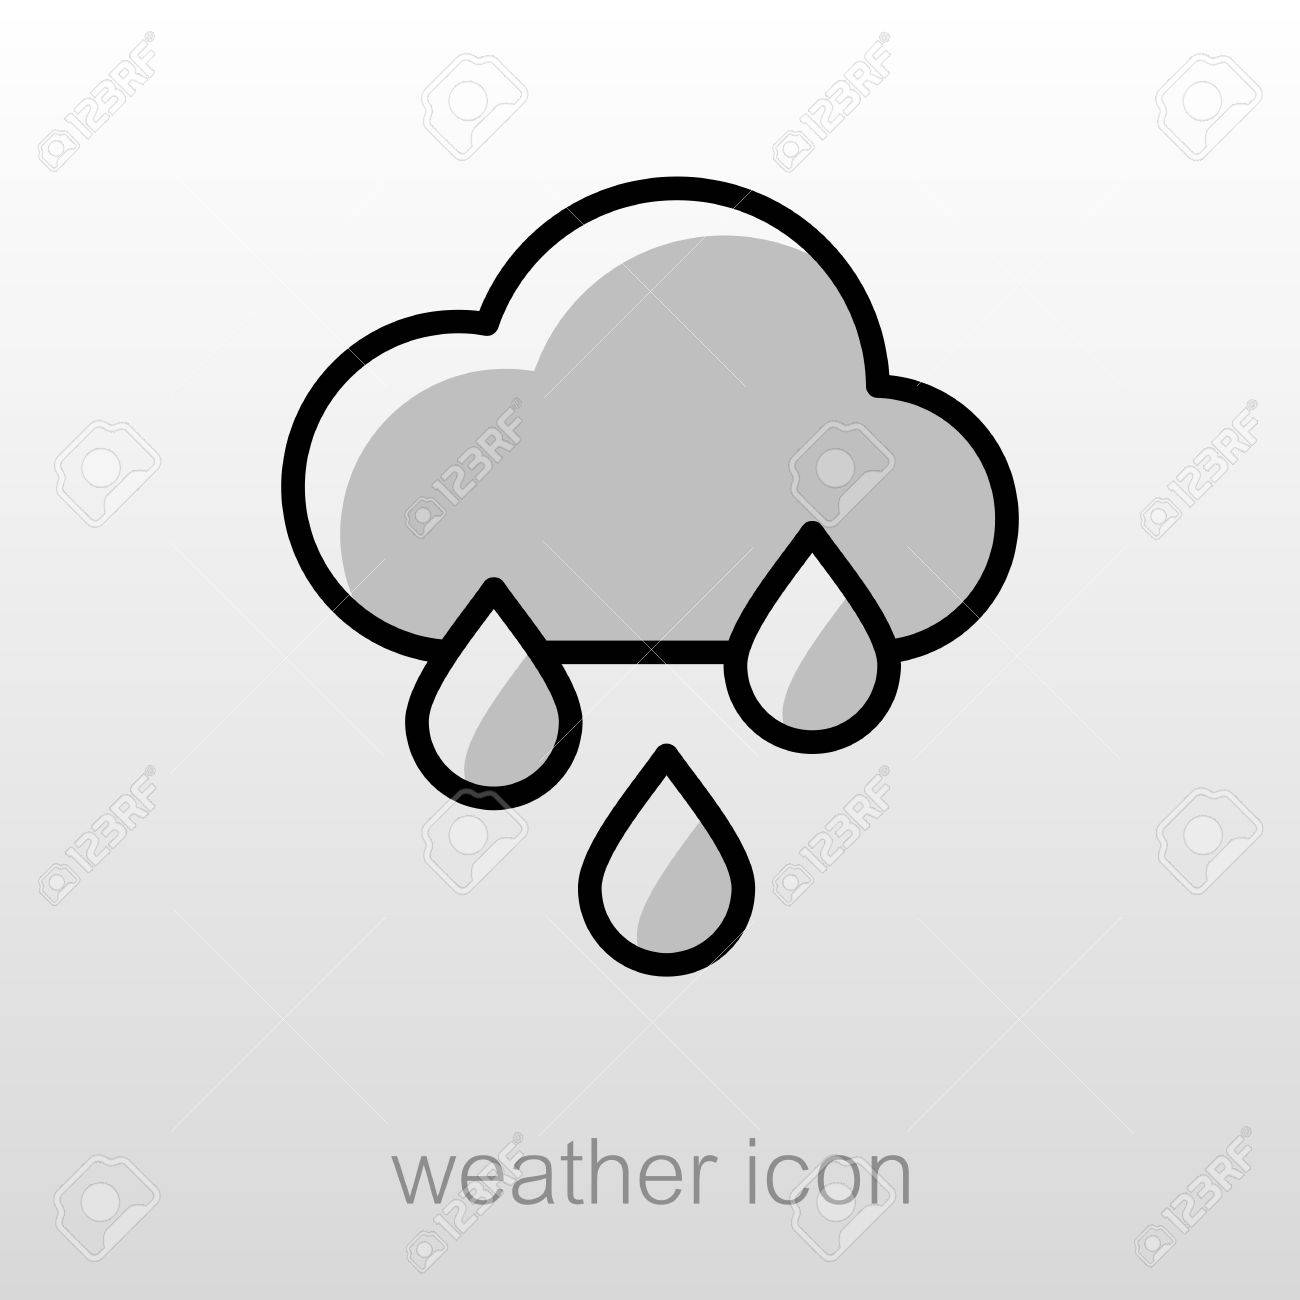 Rain Cloud Rainfall outline icon  Meteorology  Weather  Vector